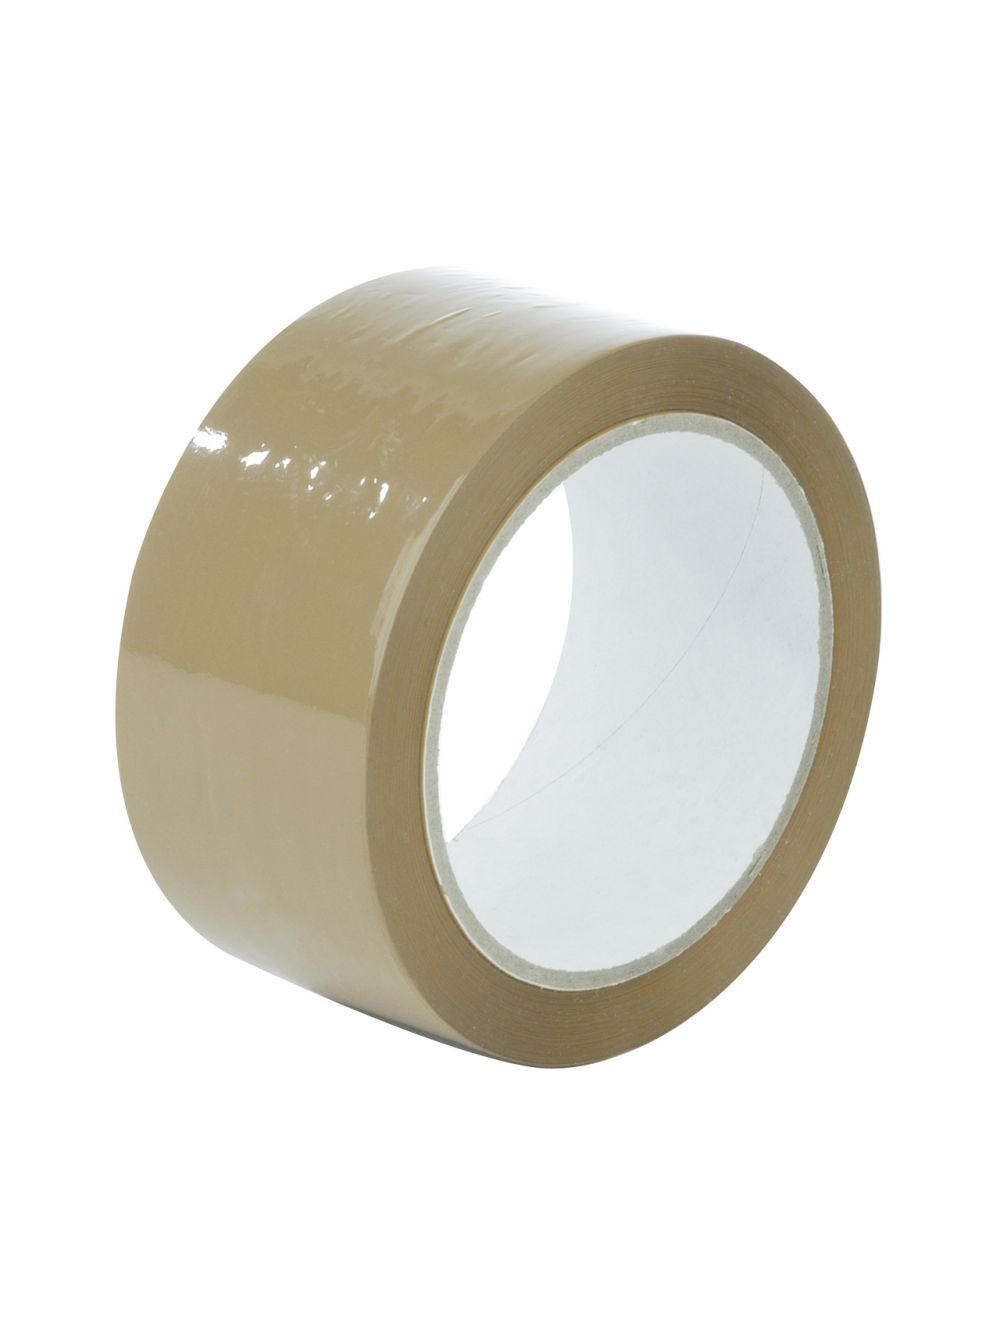 CHEAPEST 6 Rolls  Strong Brown buff parcel Tape Packing Packaging 66m 48mm 50mm